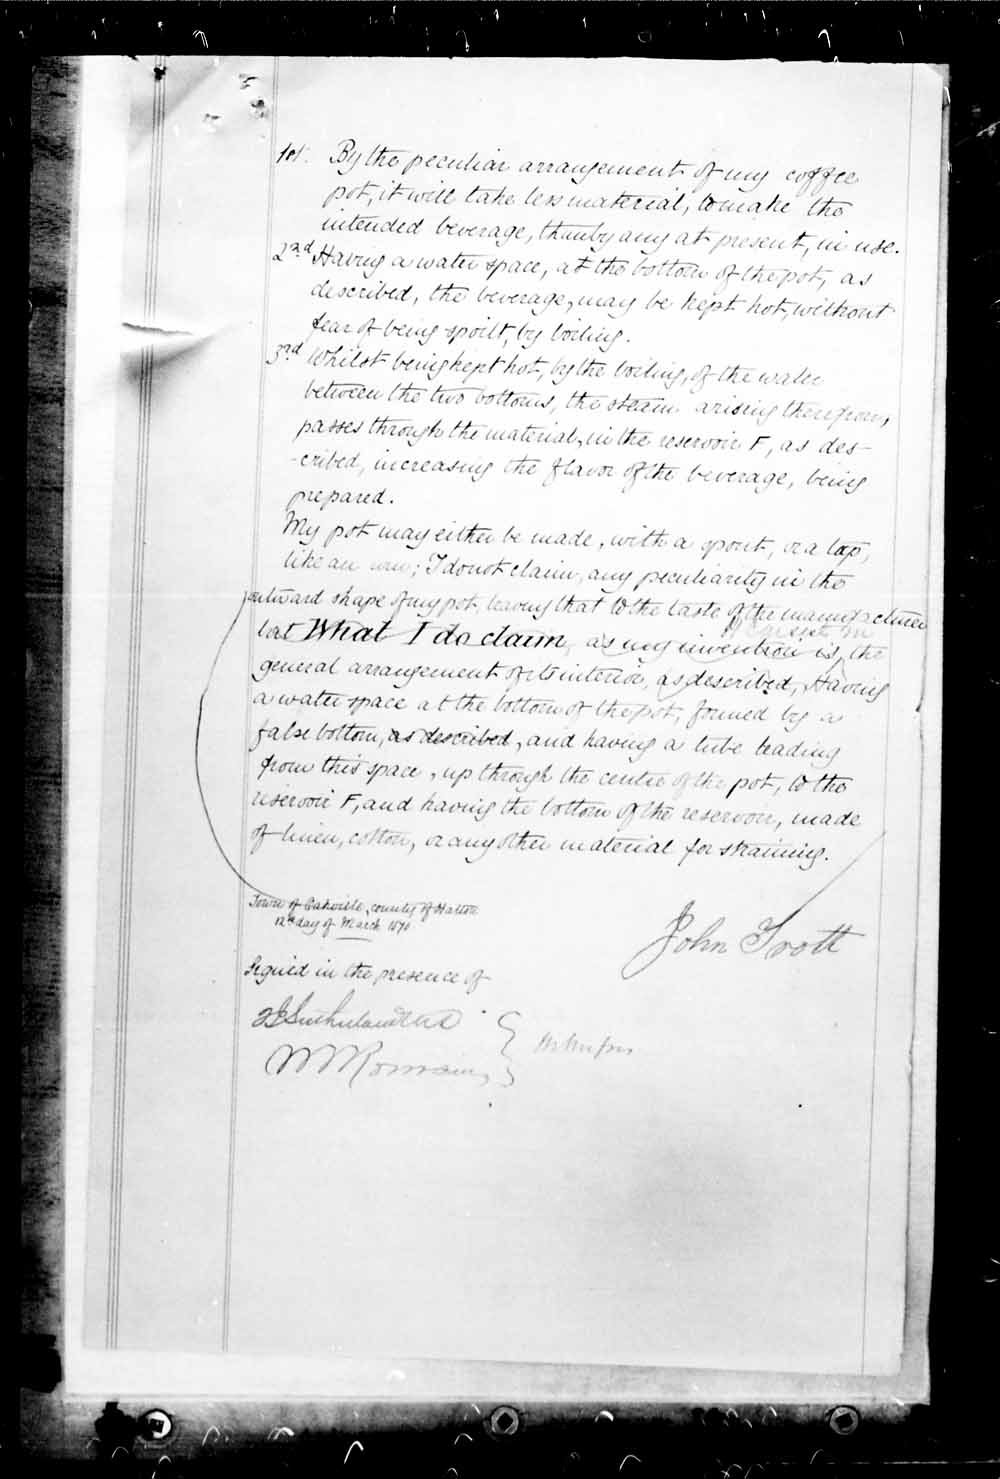 Digitized page of Canadian Patents, 1869-1919 for Image No.: e003228638